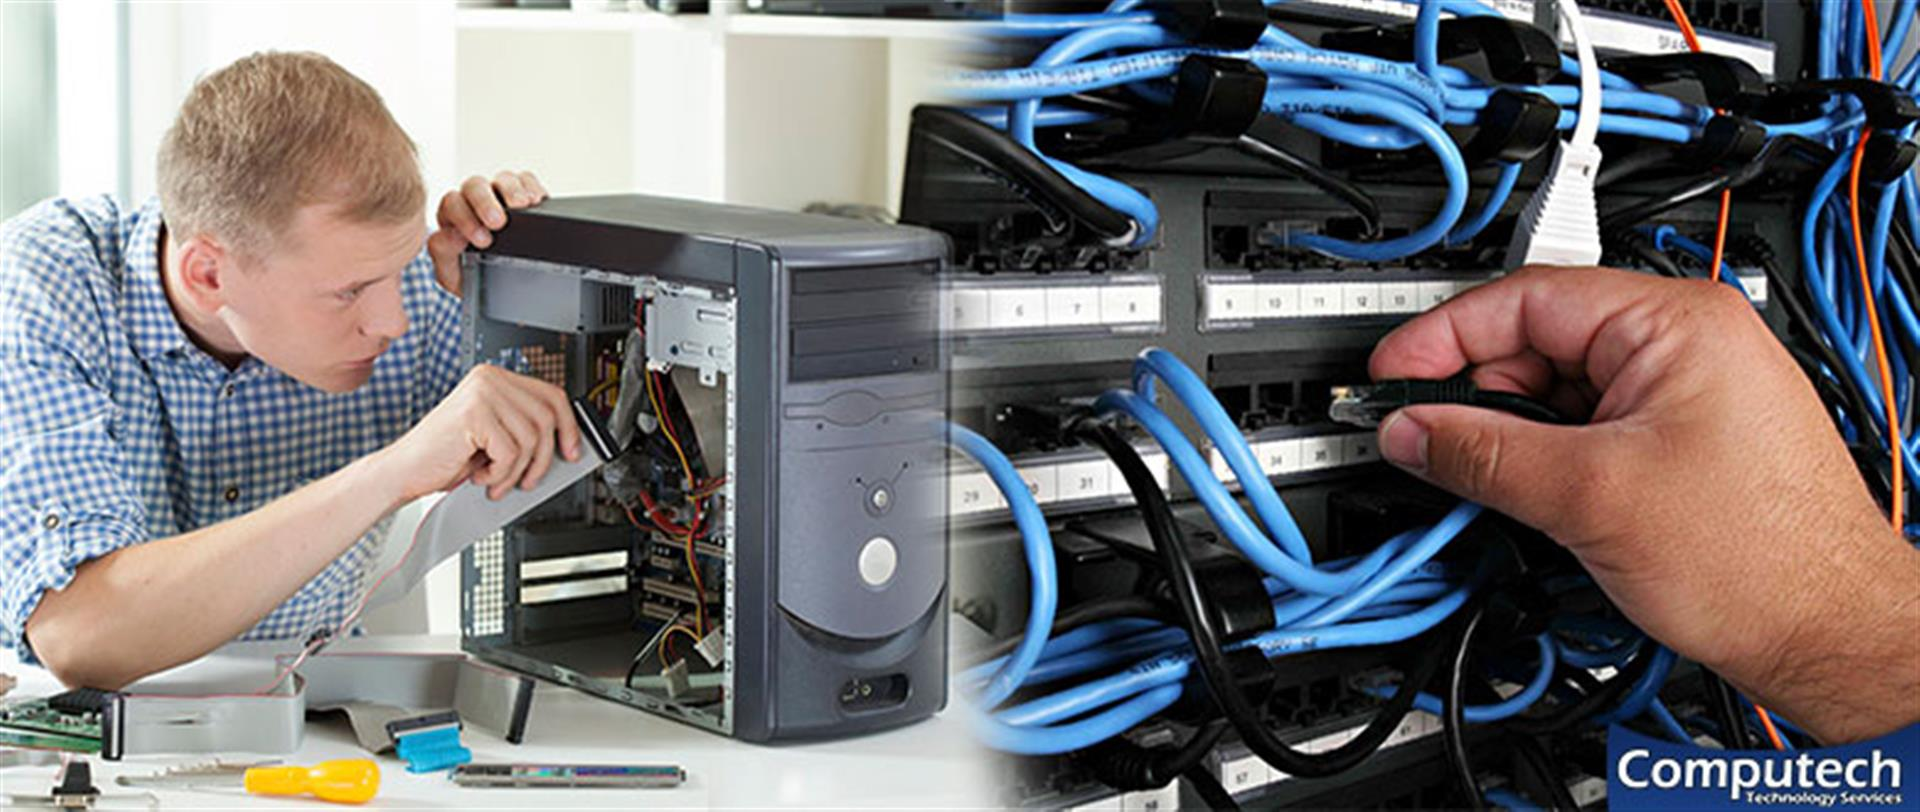 Clifton Arizona On-Site Computer & Printer Repairs, Network, Telecom and High Speed Data Low Voltage Cabling Solutions